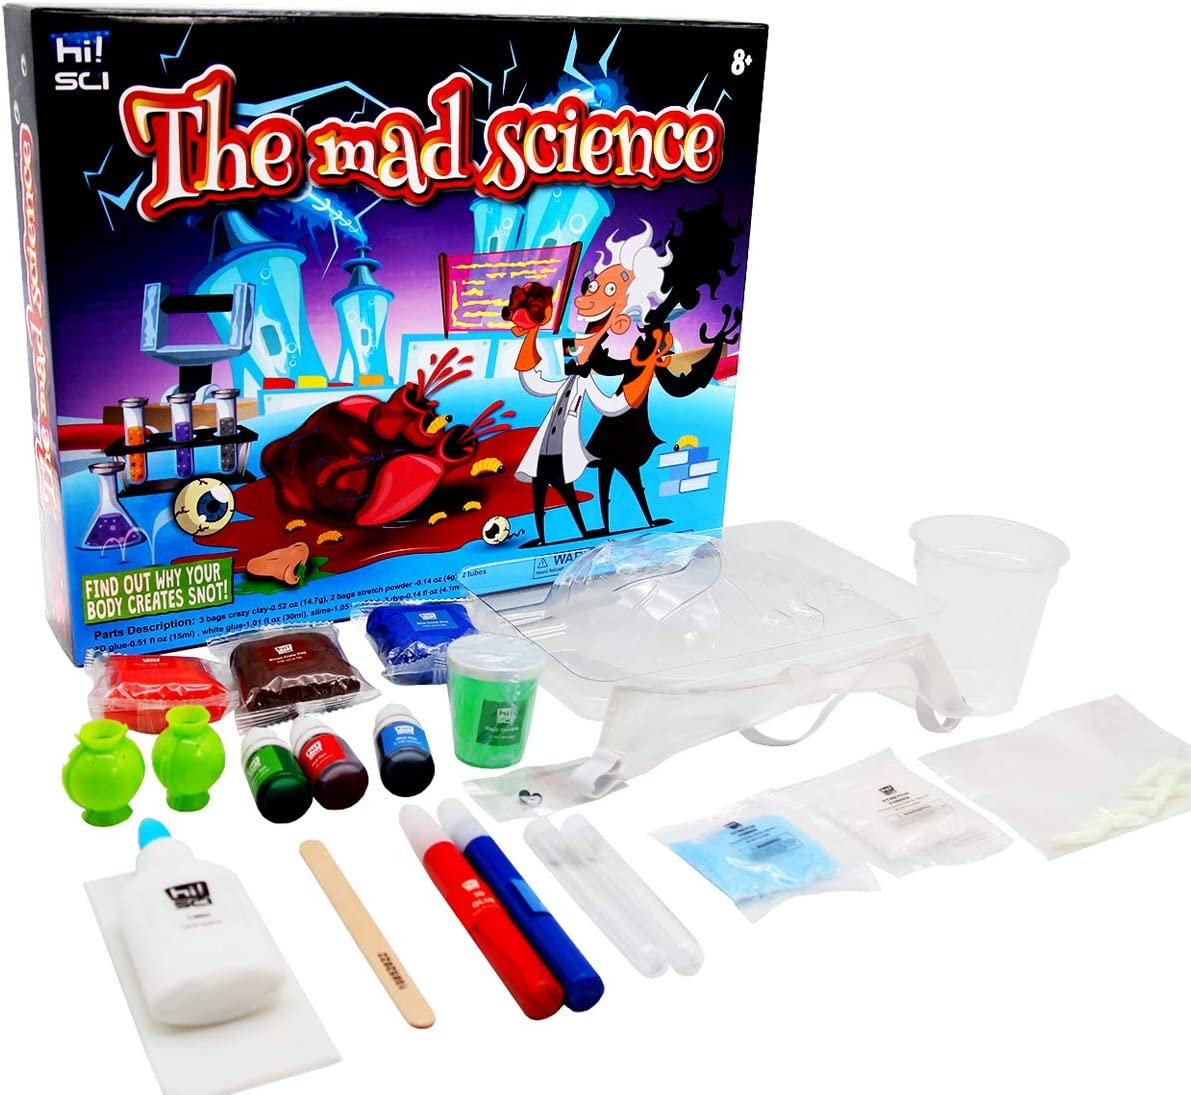 hi!SCI Disgusting Science Kit for Kids Hours of Fun Toy Gifts The Mad Scientist Gross Science Lab Activity//Experiment Set w// 34 Tools